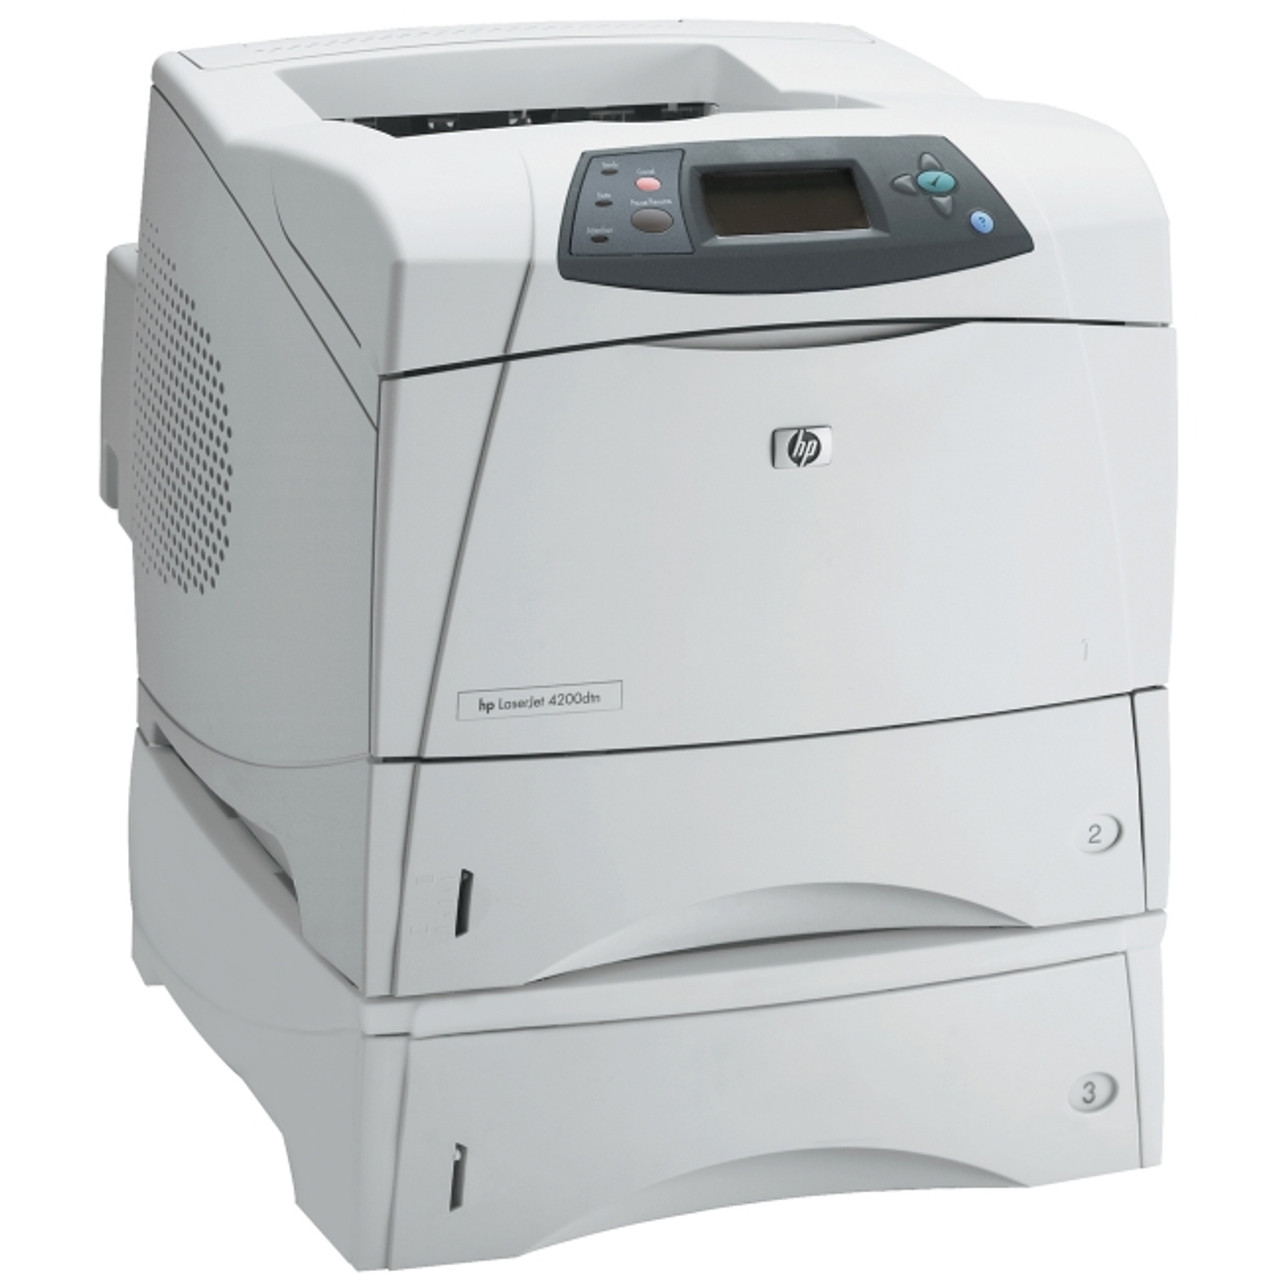 HP LaserJet 4200dtn - Q2428A - HP Laser Printer for sale